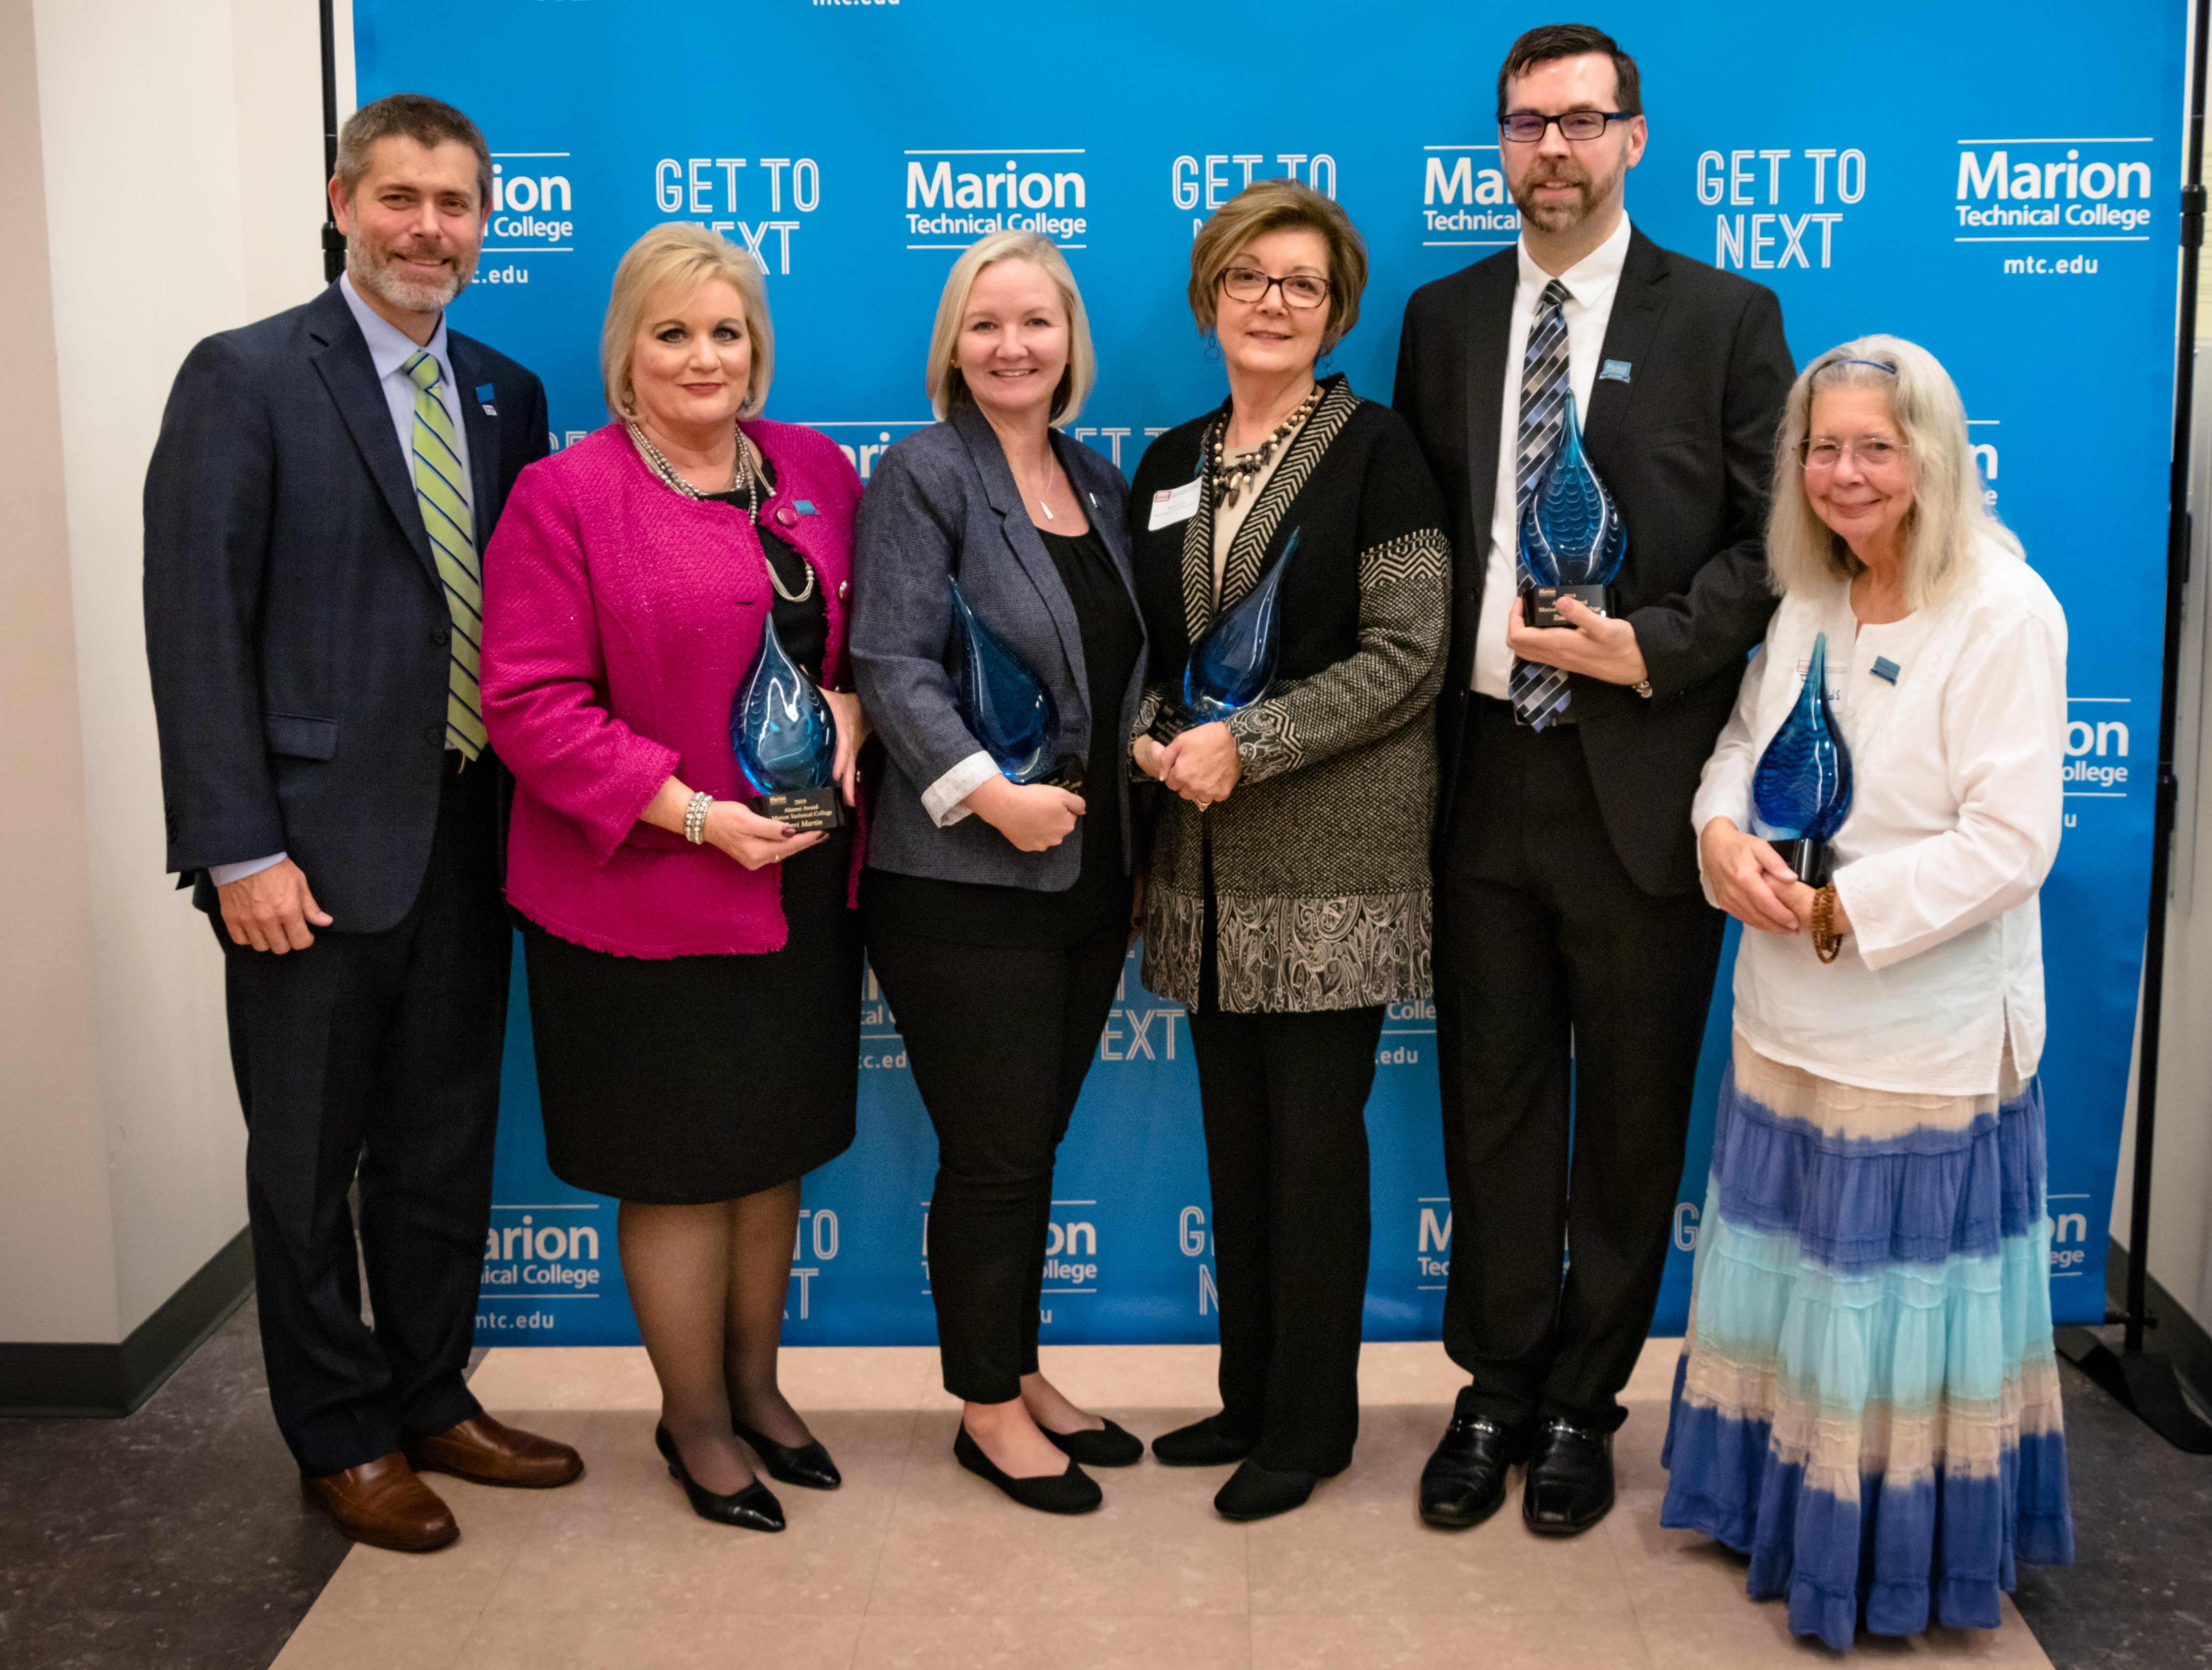 Marion Technical College Inducts Five into Alumni Hall of Fame